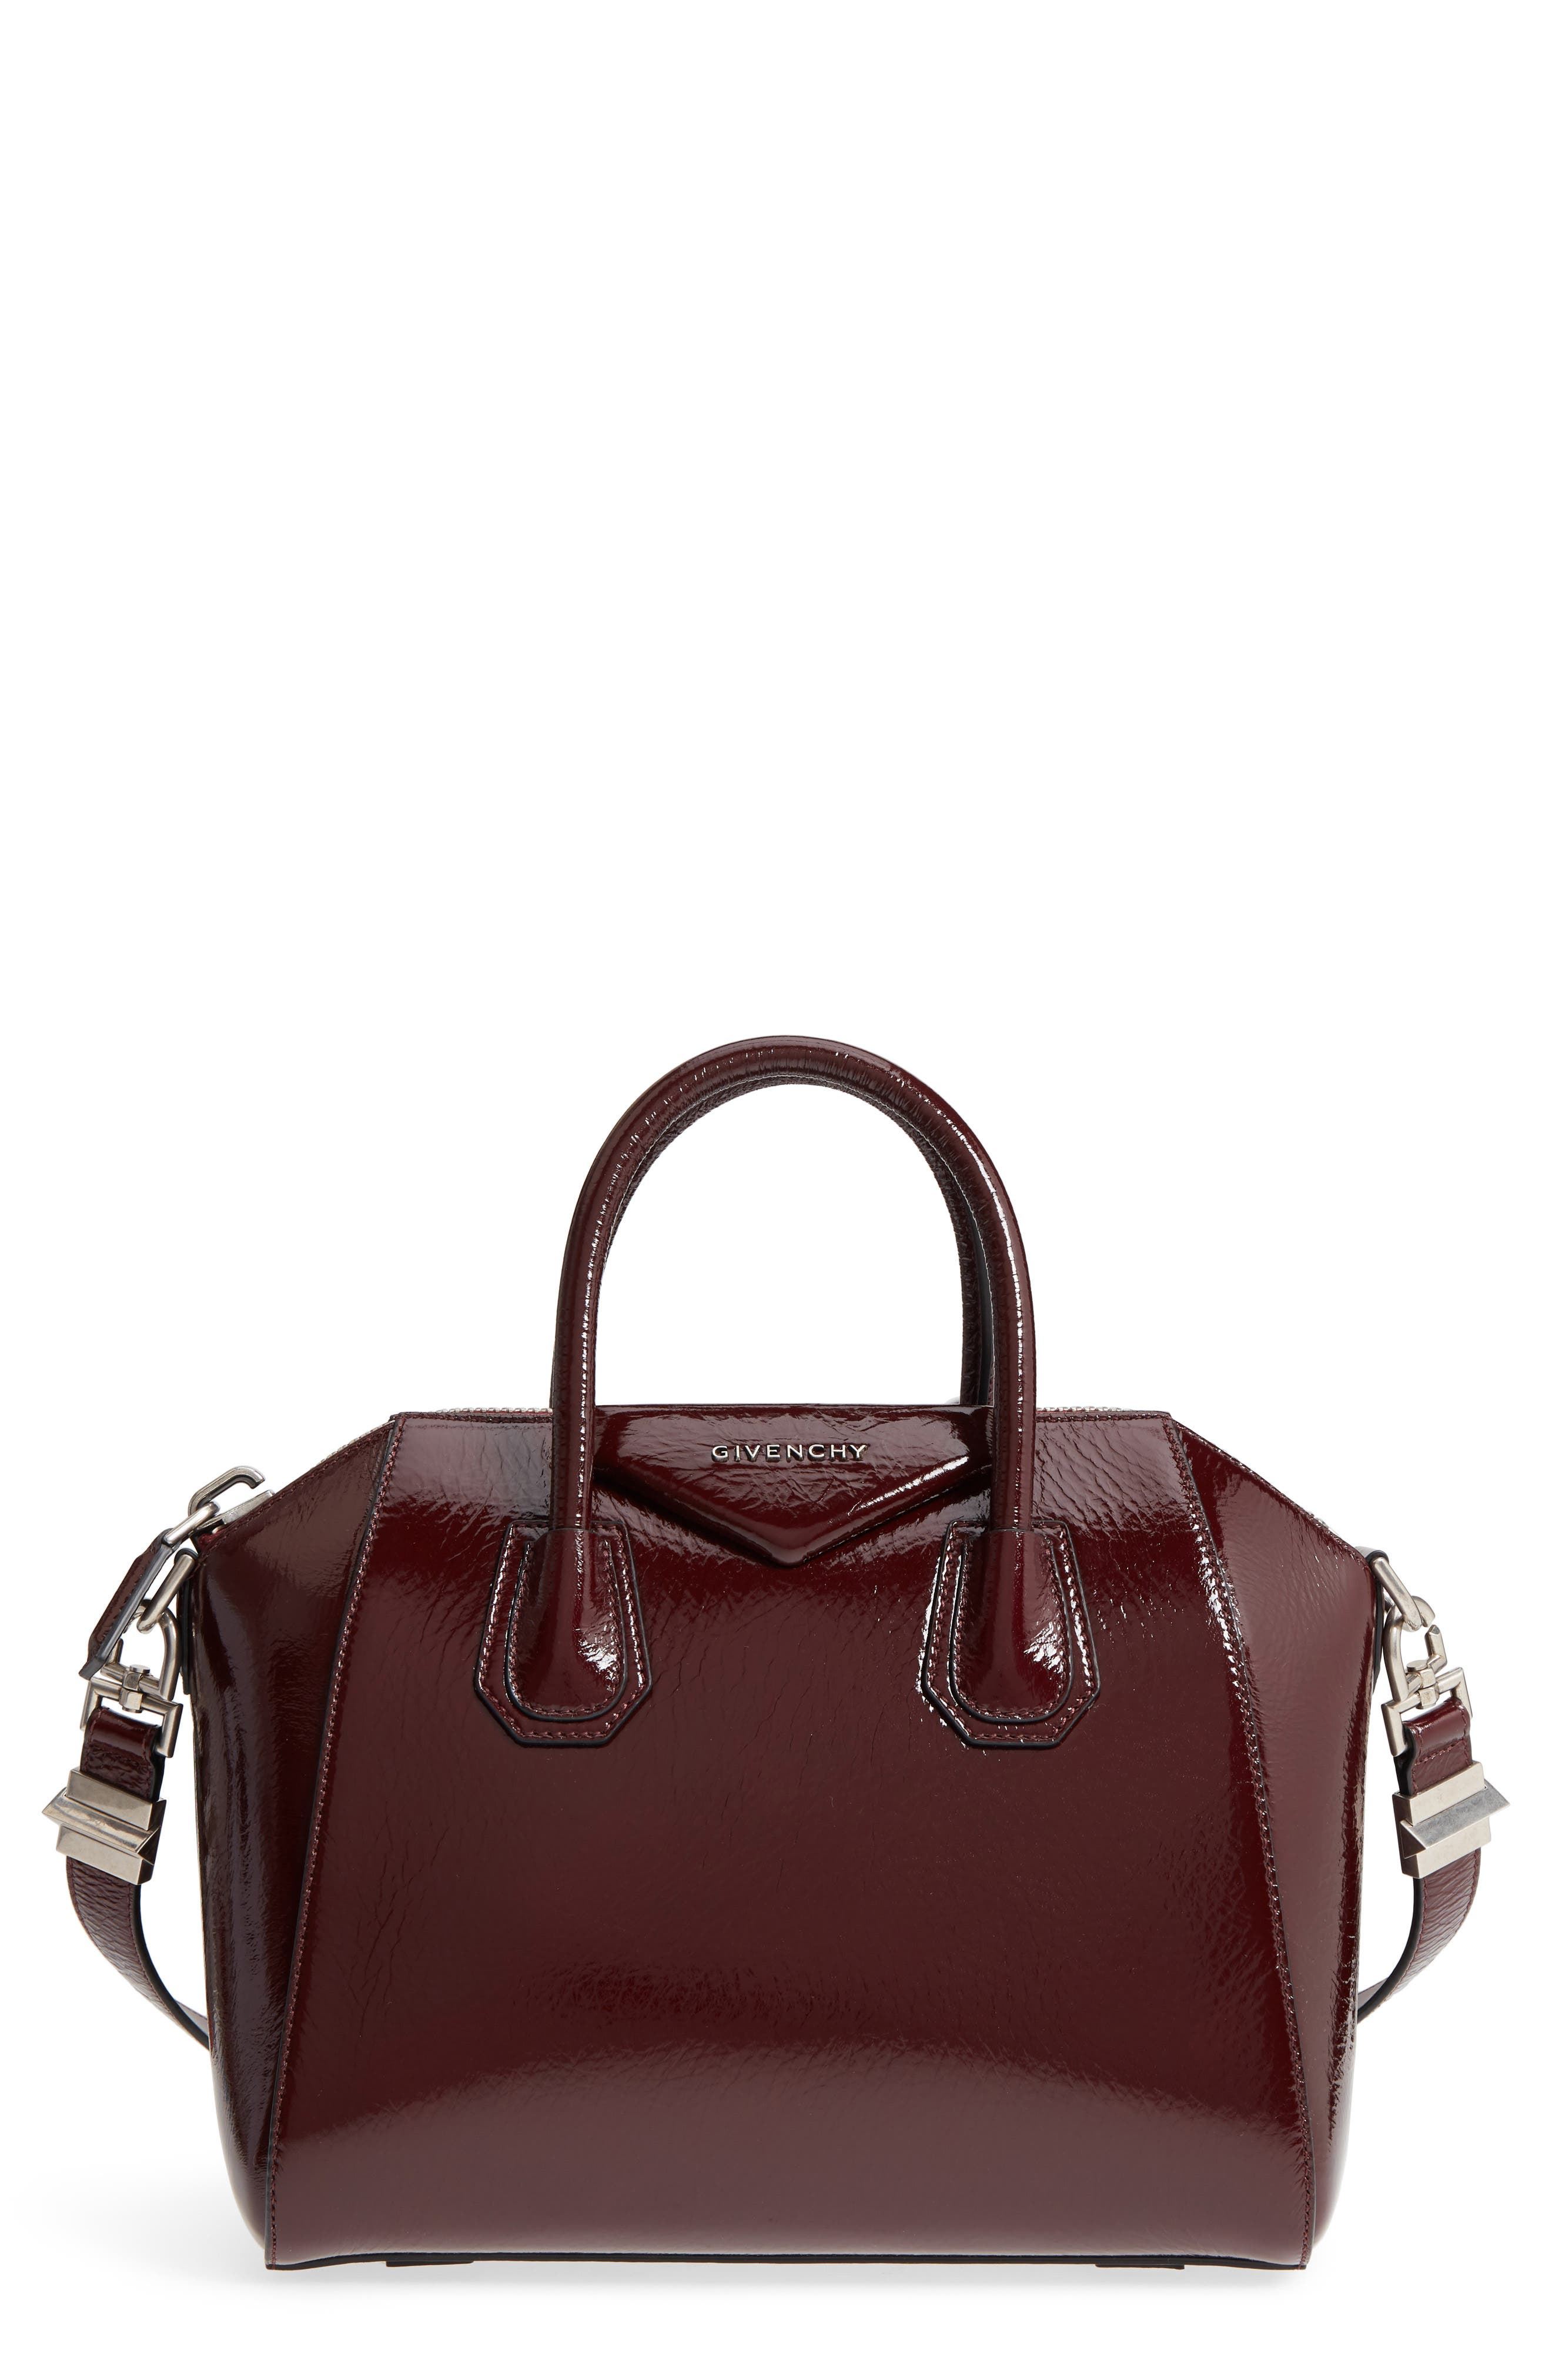 Givenchy Small Antigona Creased Patent Leather Satchel